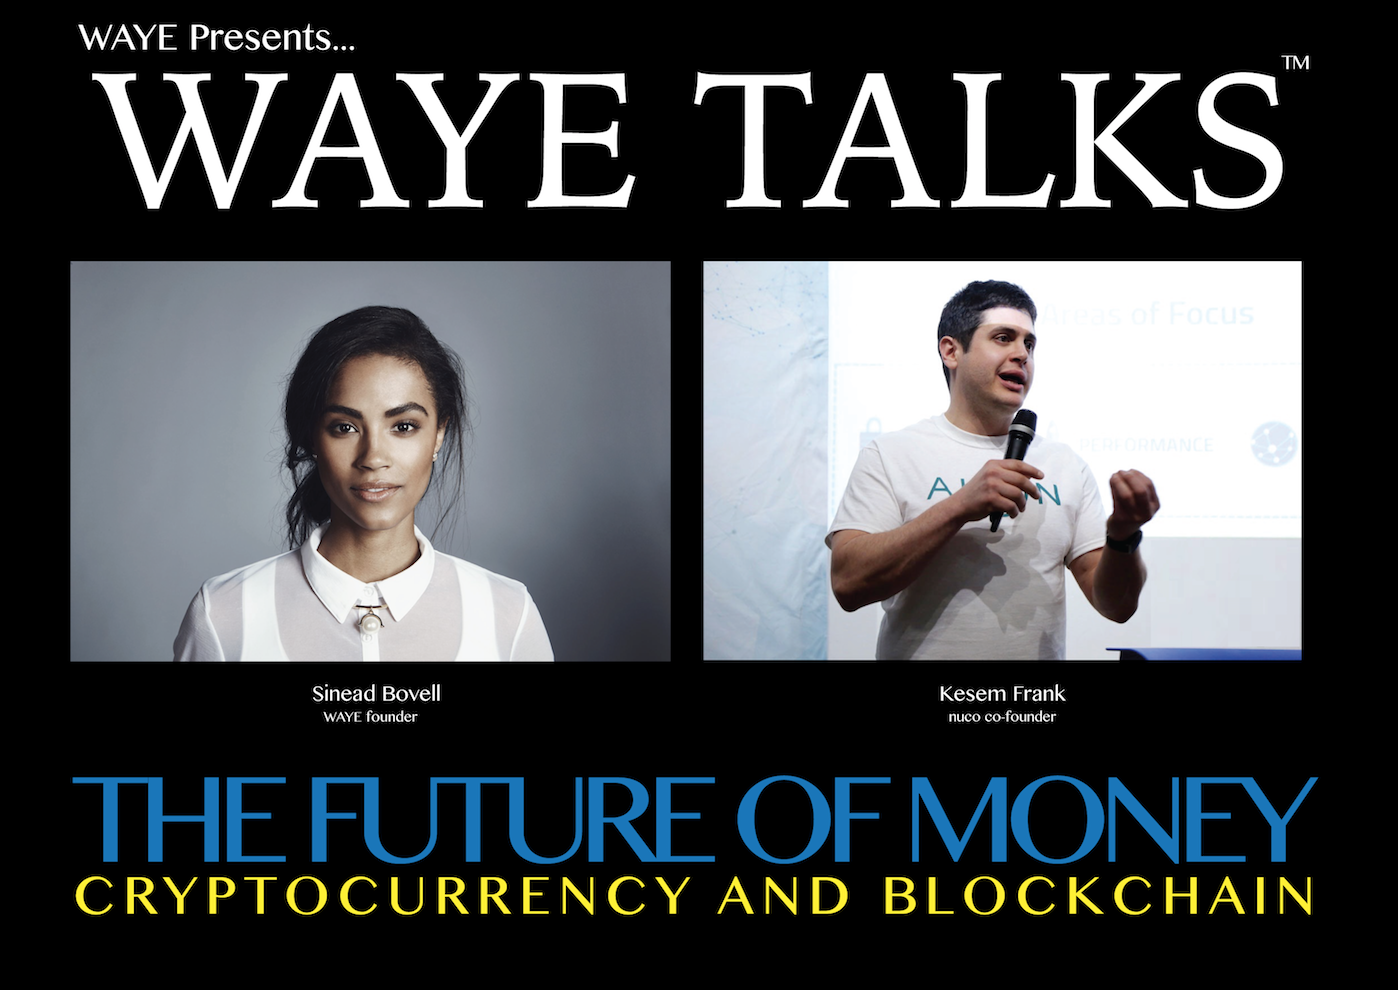 THE FUTURE OF MONEY: Cryptocurrency and Blockchain - Thursday March 15th, 7:30pm-9:00pm